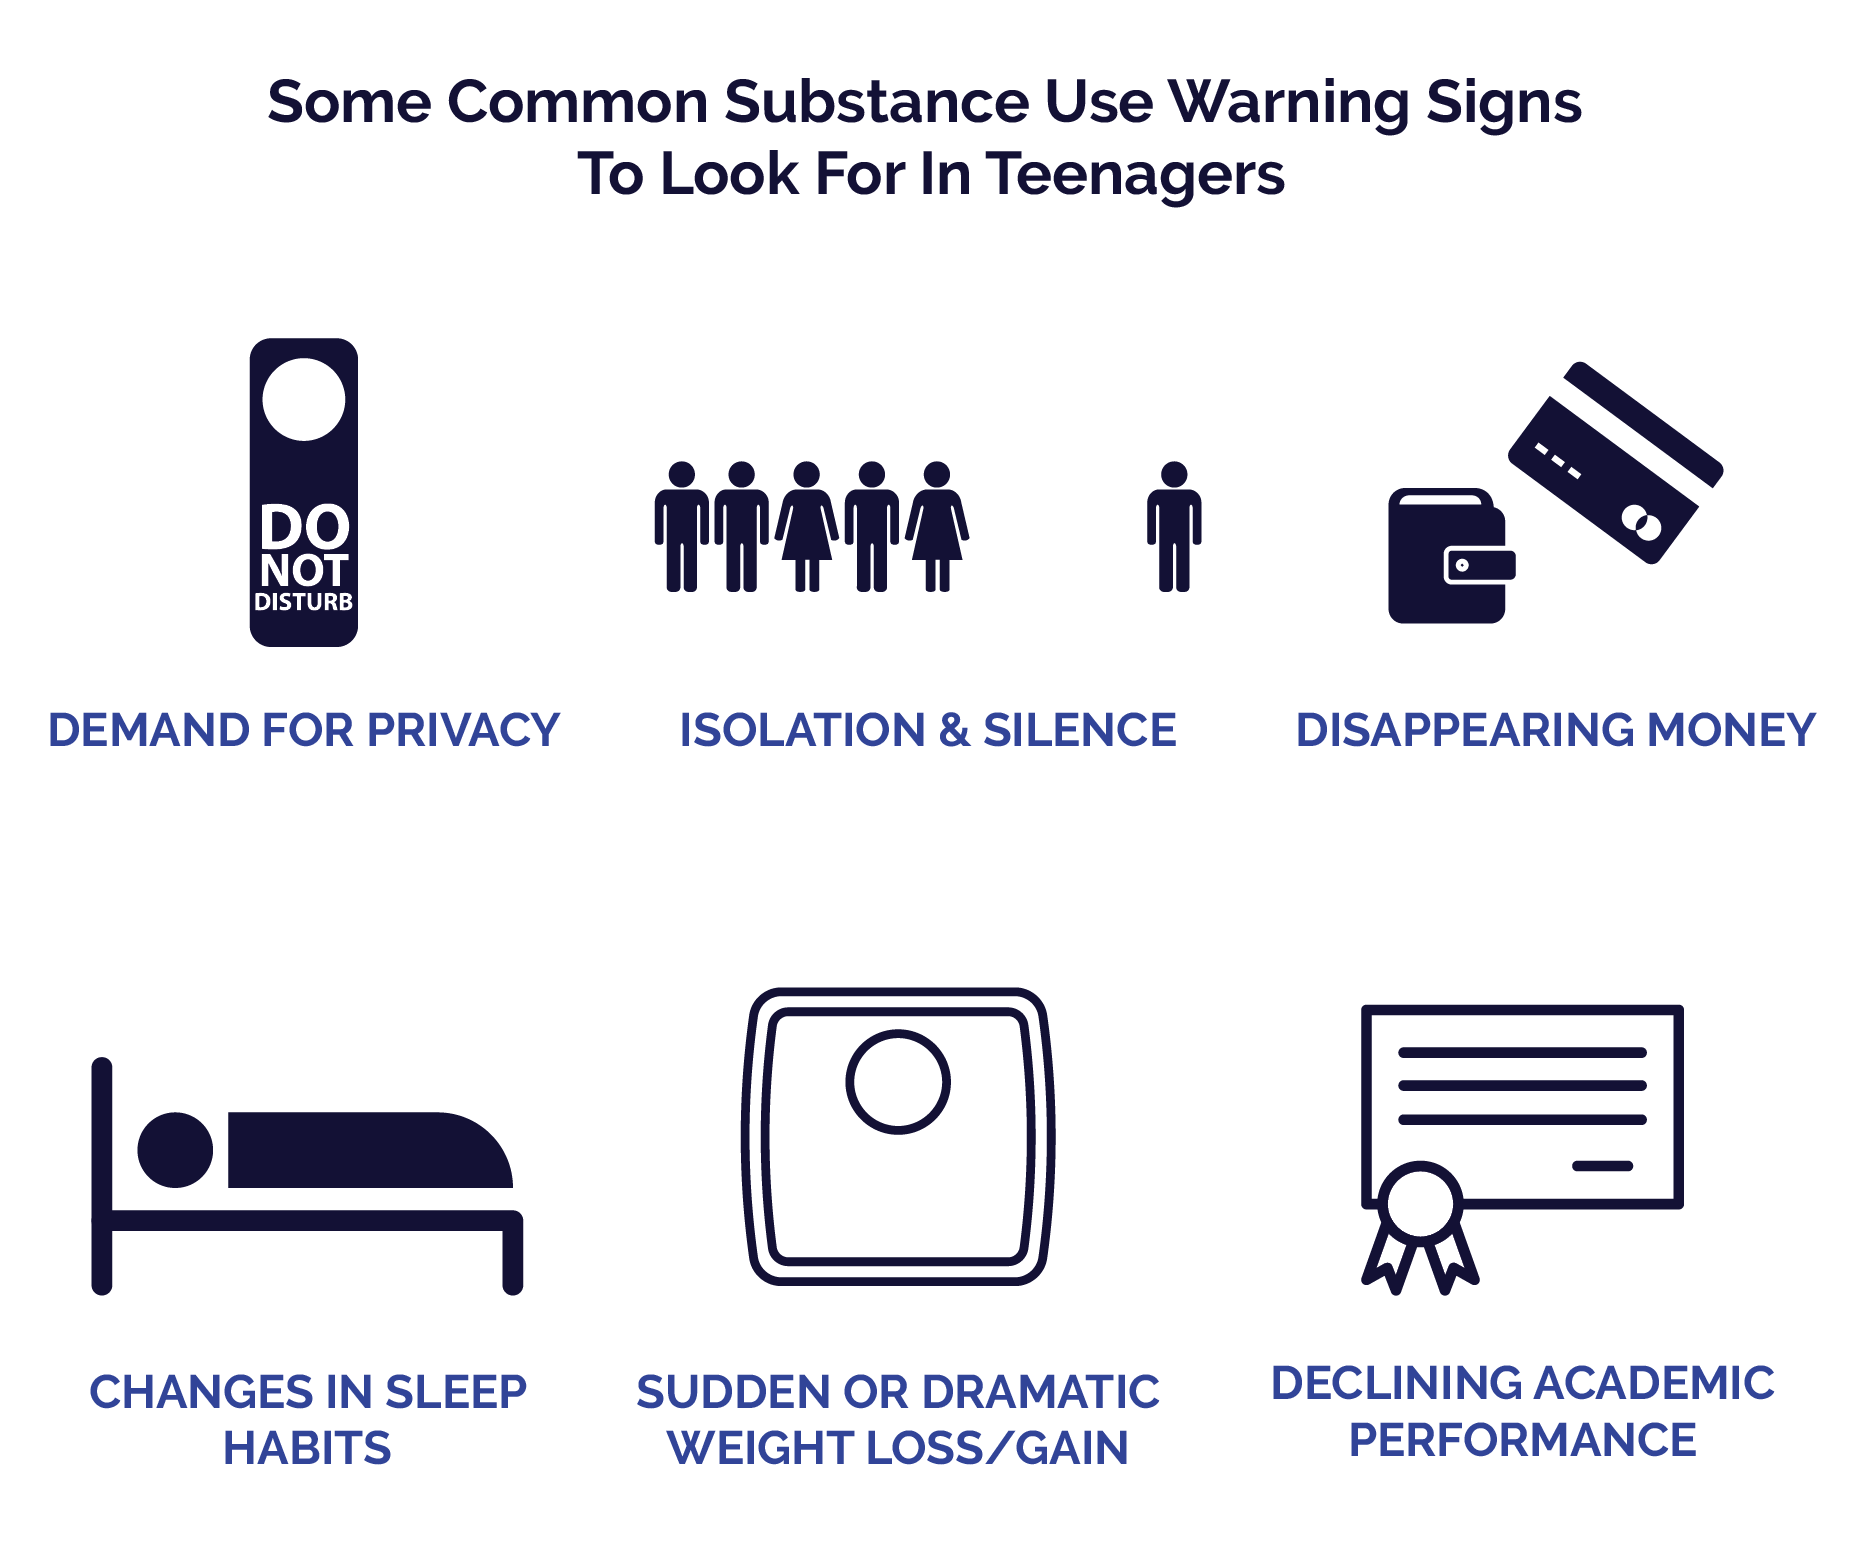 A Guide to Adolescent Substance Use Disorder in Santa Barbara County - Warning Signs